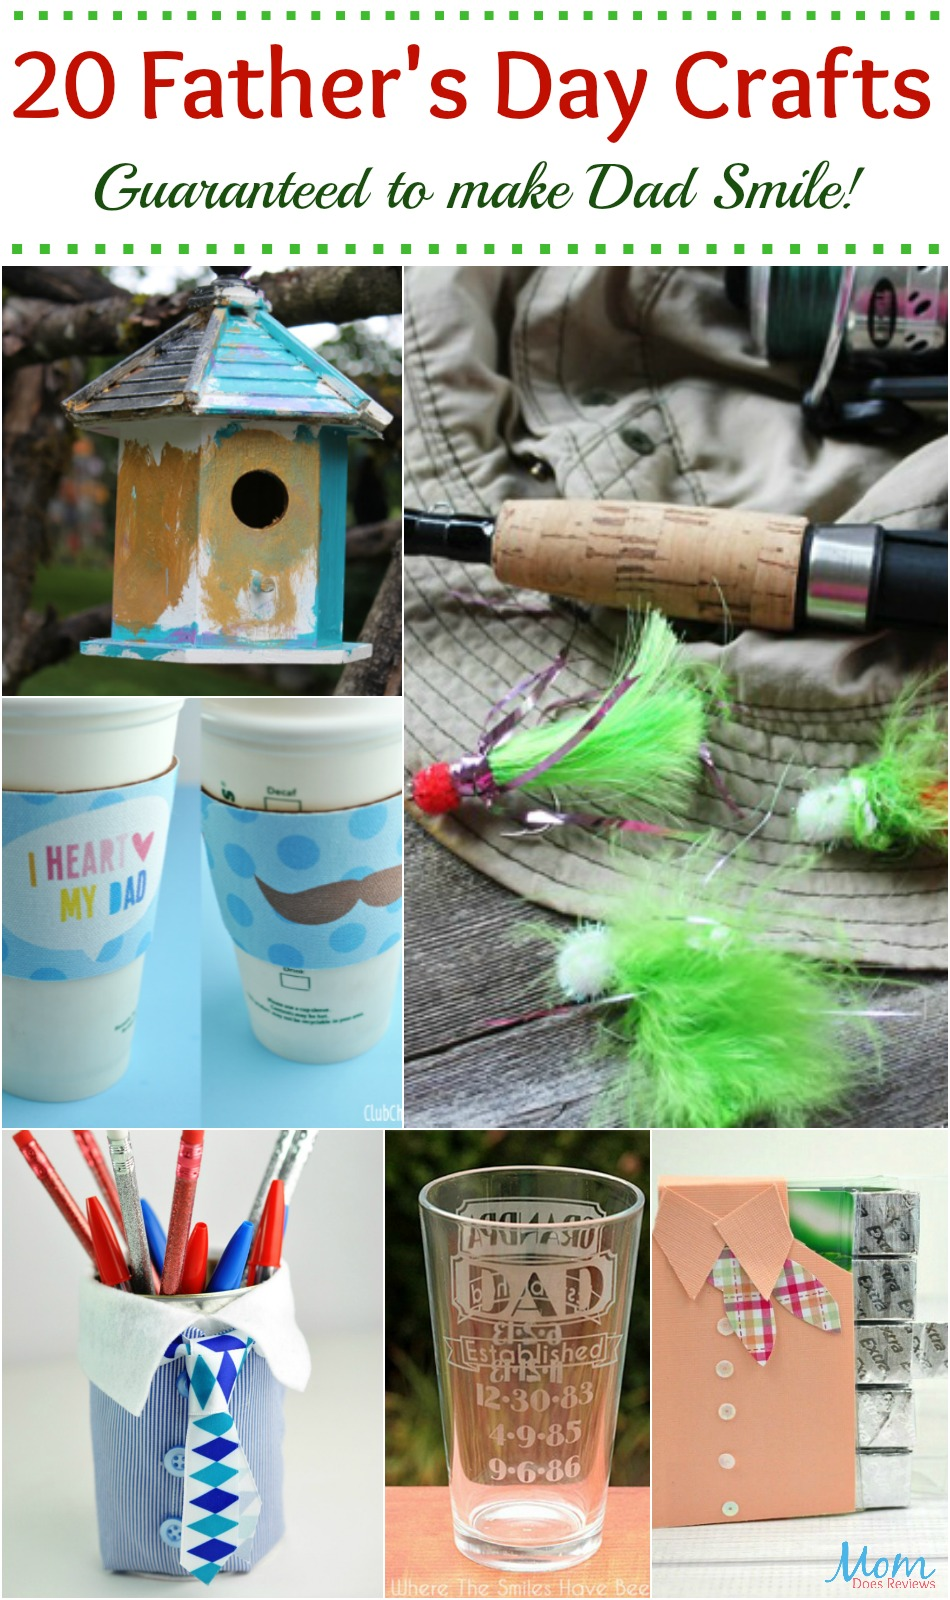 20 Father's Day Crafts Guaranteed to make Dad Smile